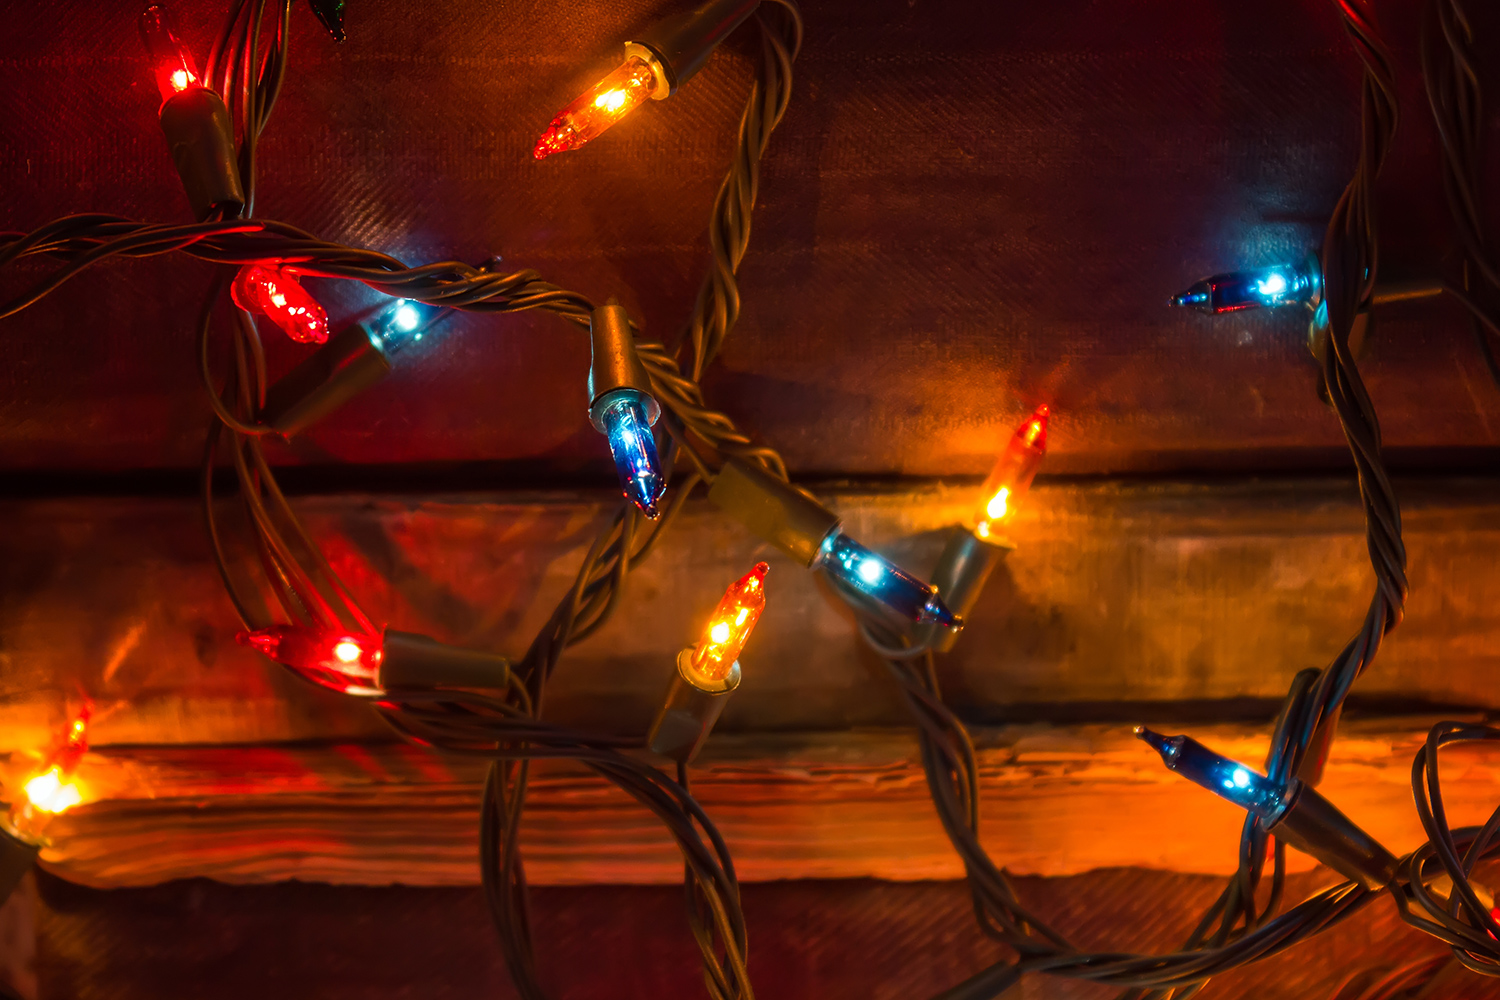 Christmas lights - Your Christmas Lights May Be Slowing Down Your Wi Fi Say Government Grinches